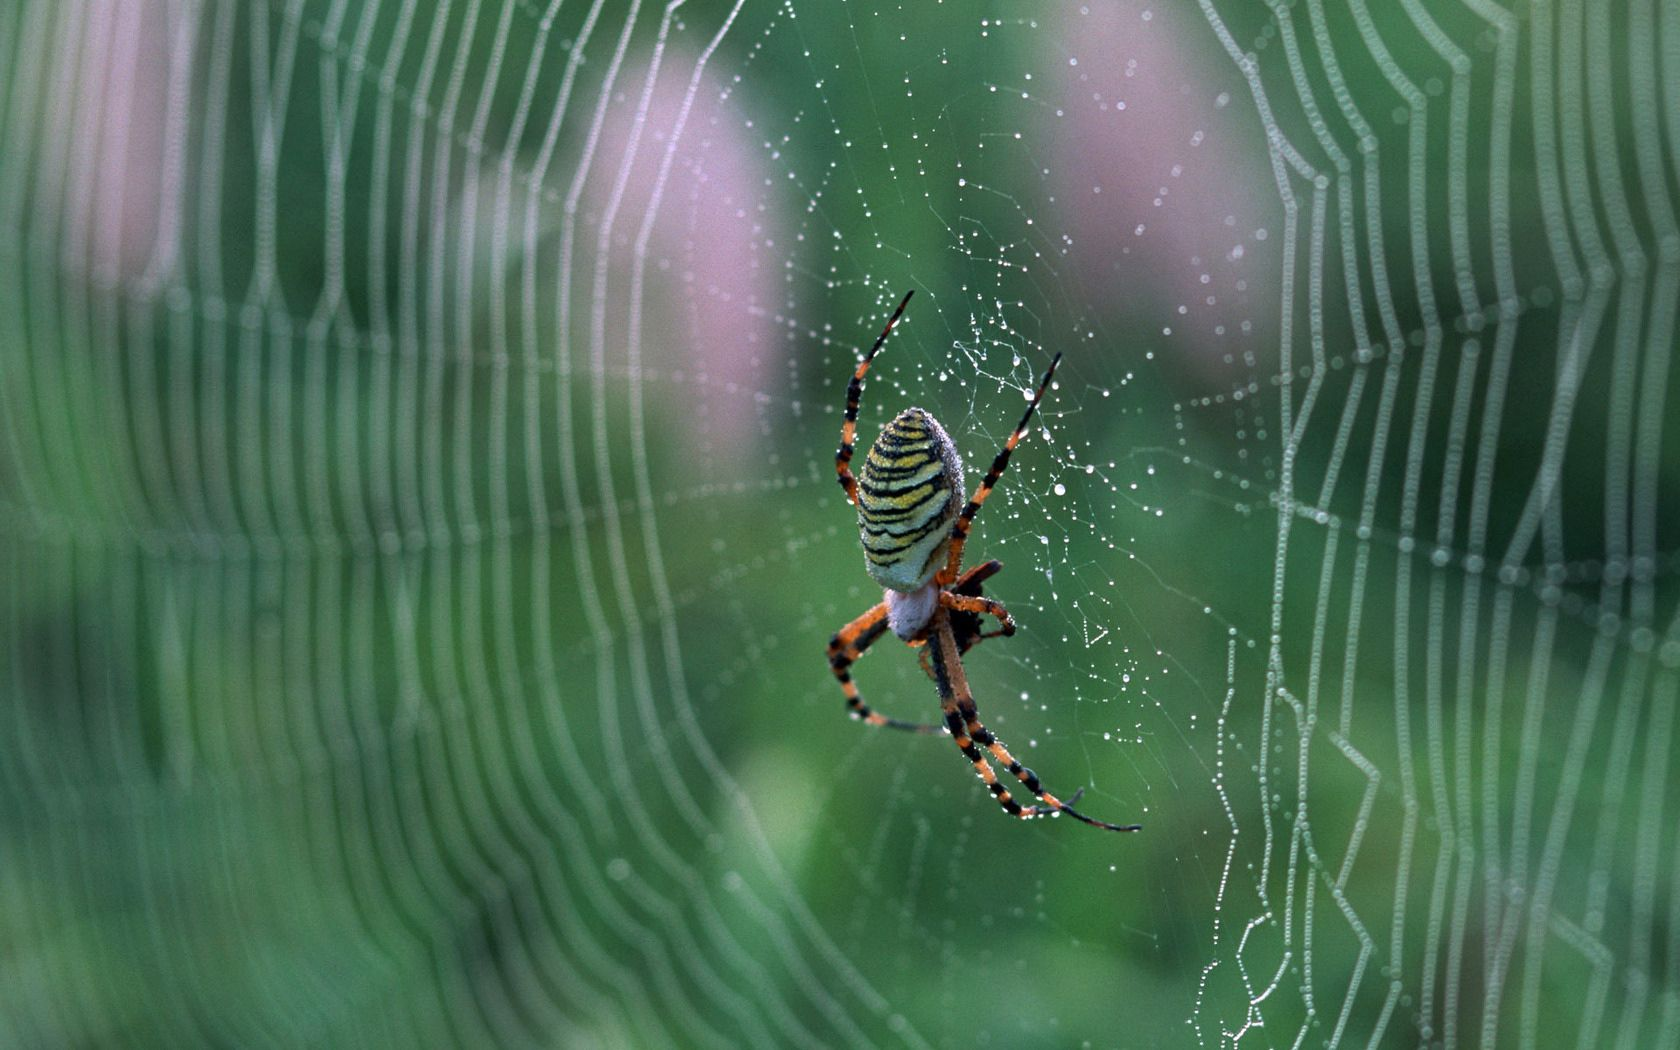 112922 download wallpaper Macro, Web, Spider, Drops screensavers and pictures for free